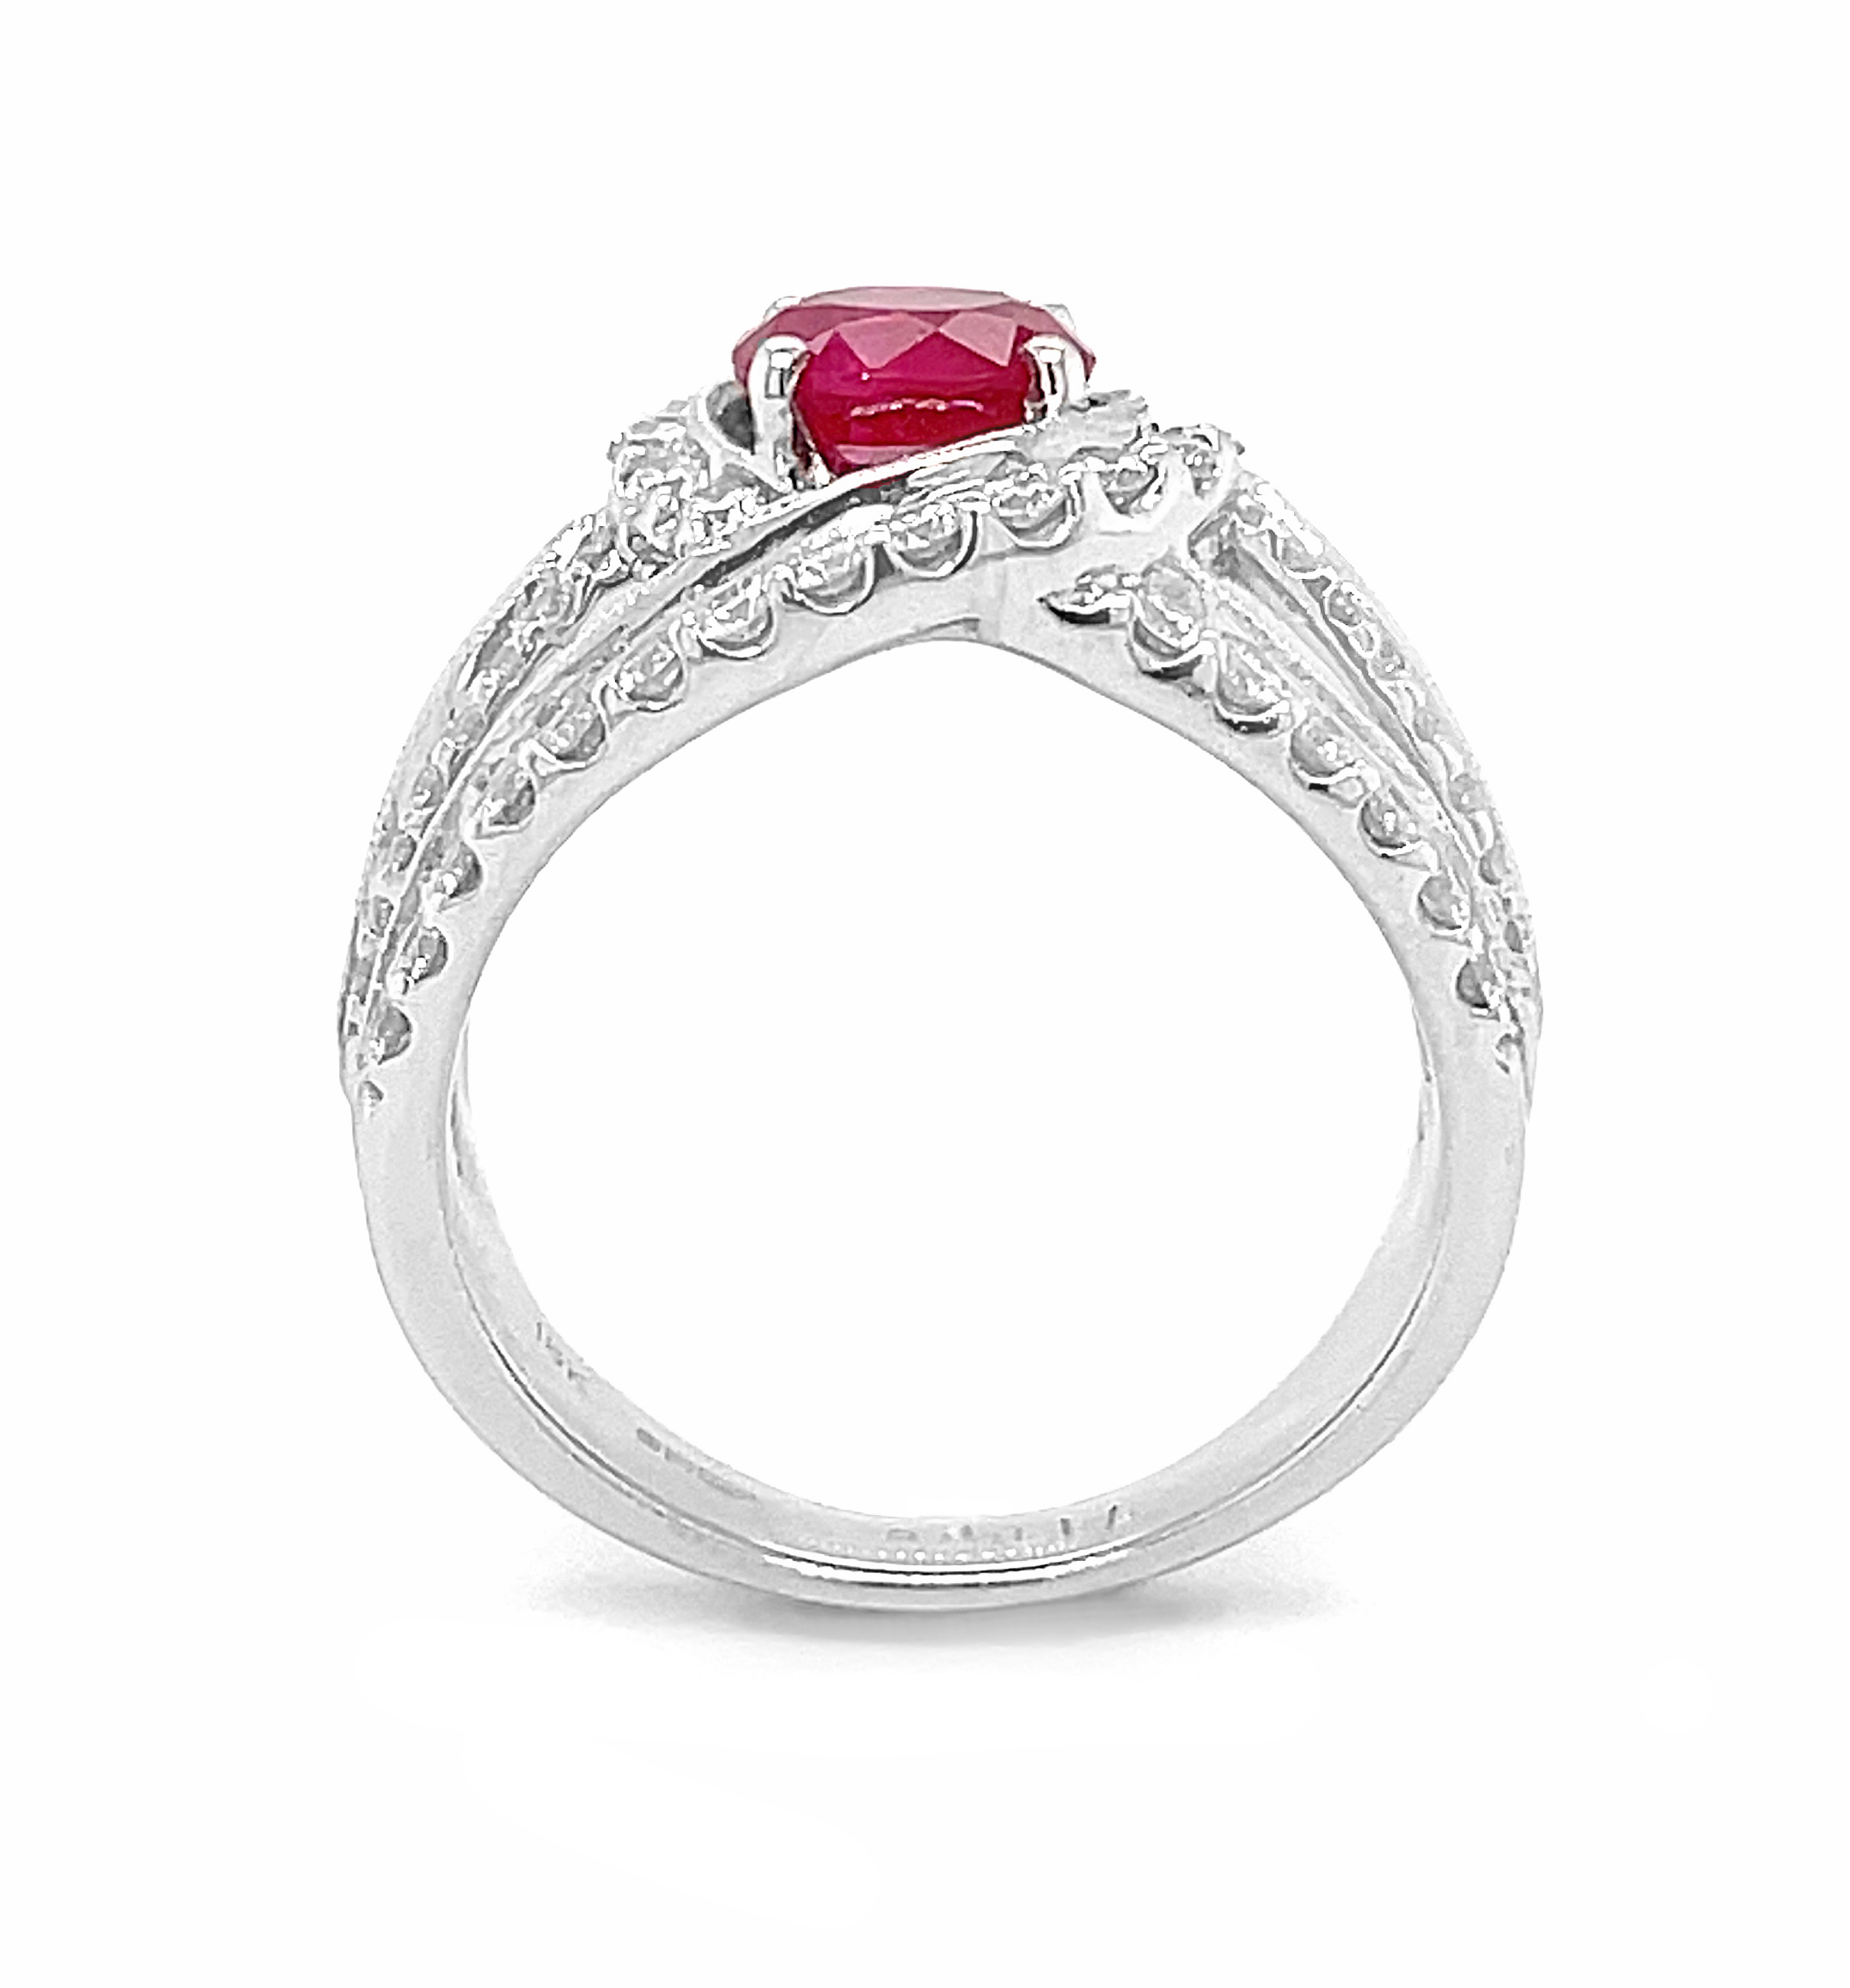 White Gold Dress Ring With Round Ruby & Brilliant Cut Diamonds